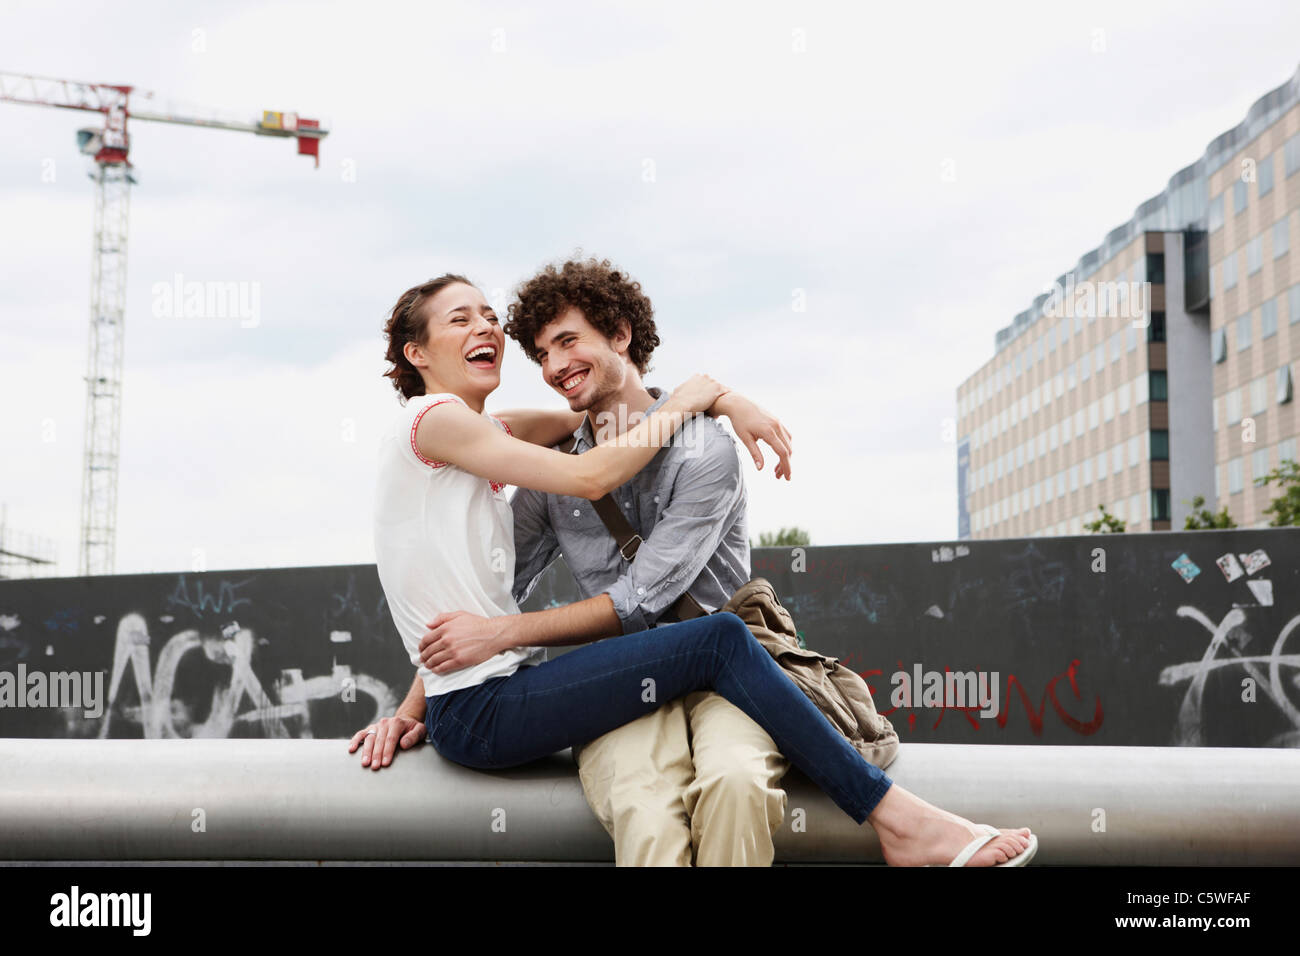 Germany, Berlin, Young couple in front of new building, cranes in background - Stock Image